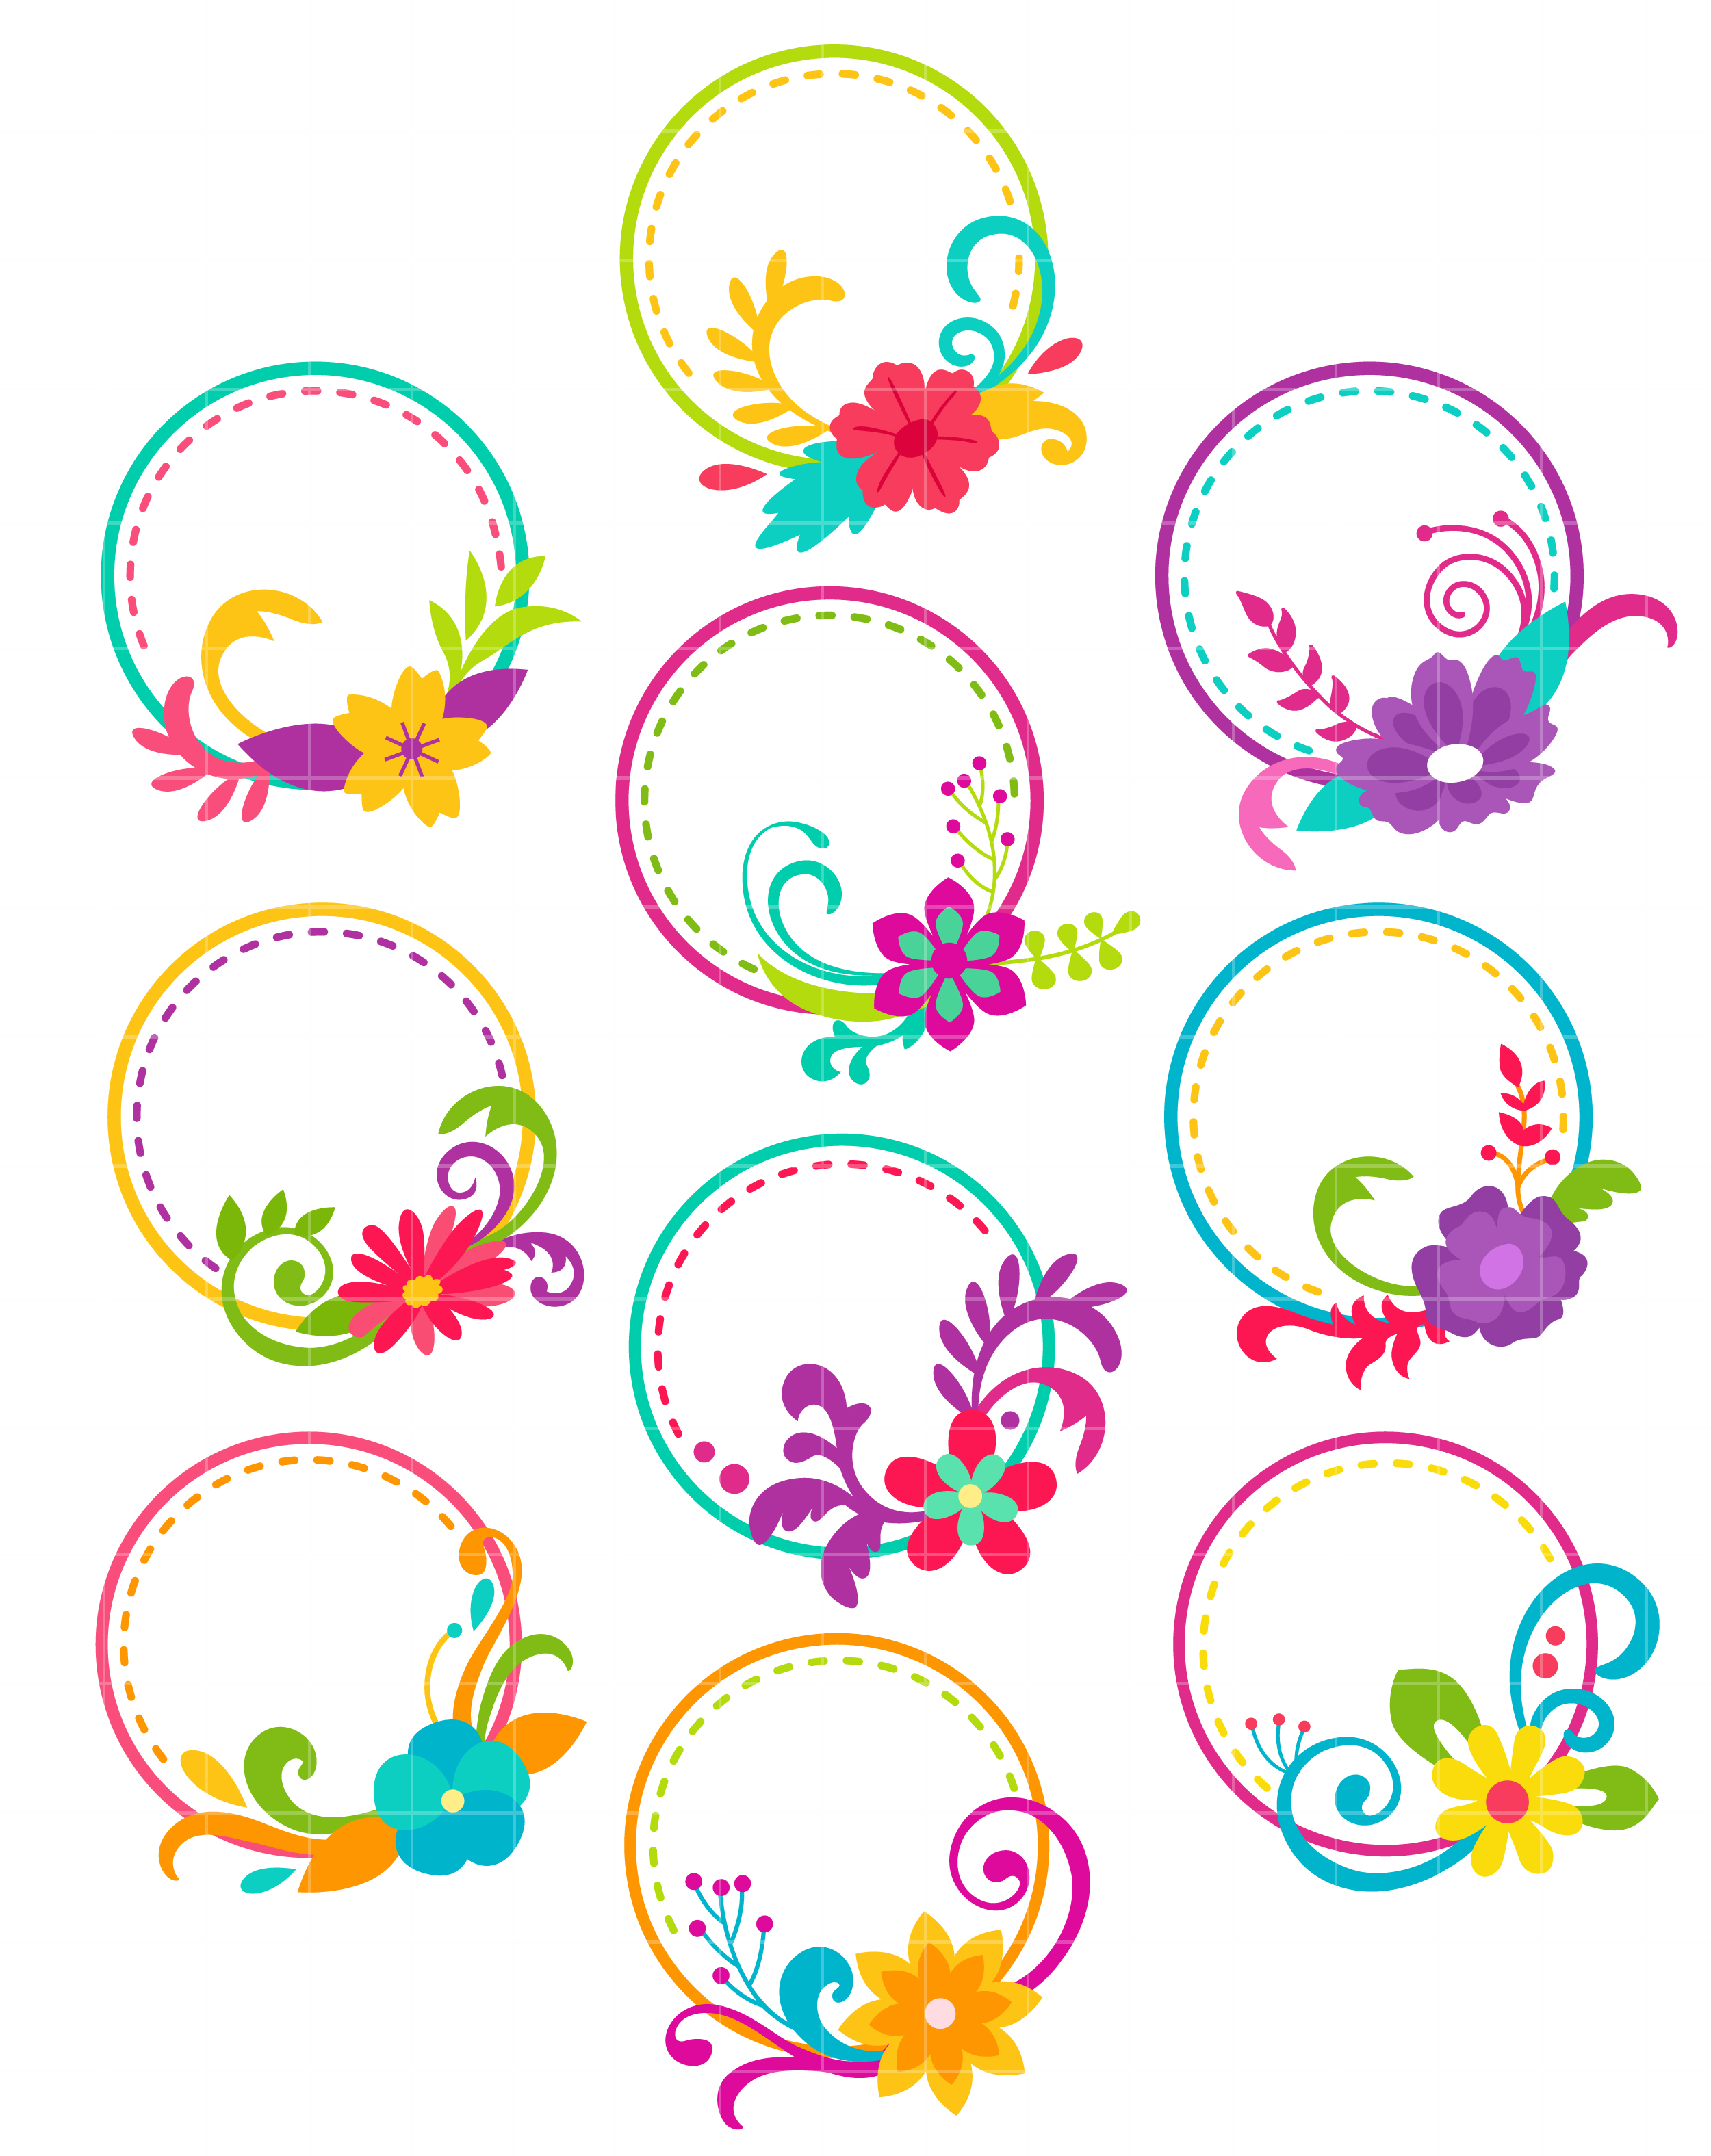 Floral Hoops Arts Set Semi Exclusive Clip Art Set For Digitizing and More.